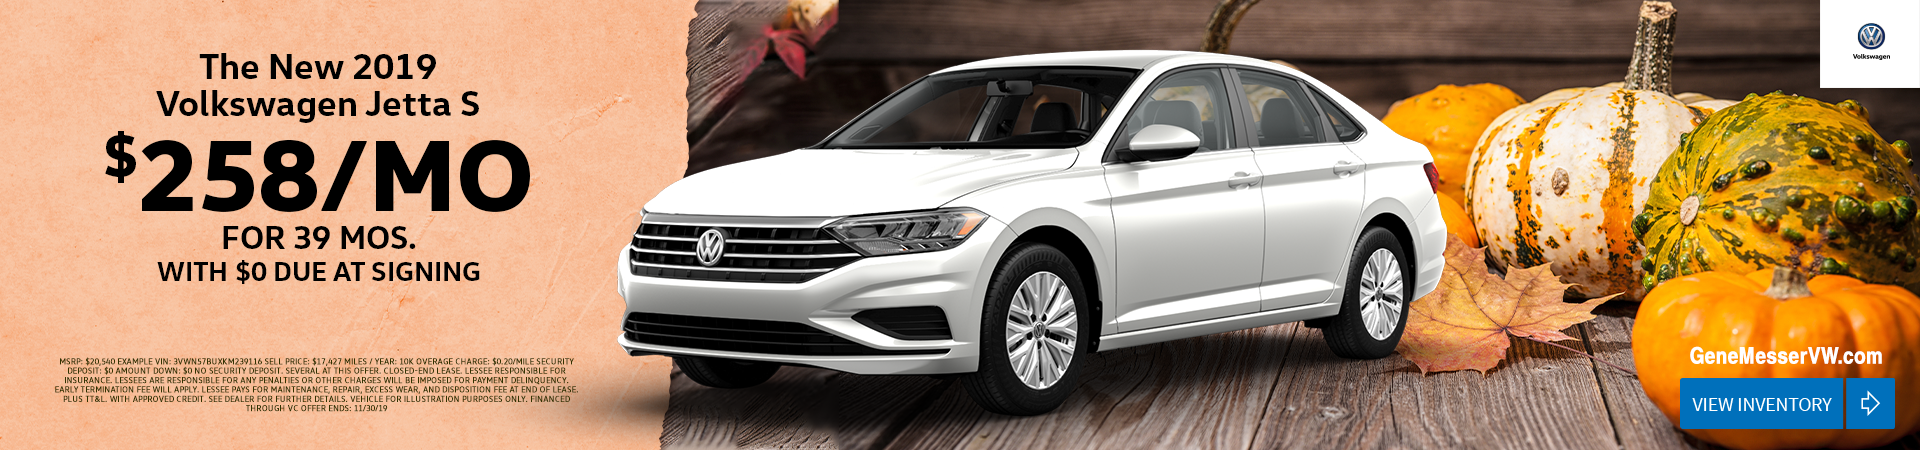 Least the 2019 Jetta S for $258/month for 39 months with $0 due at signing